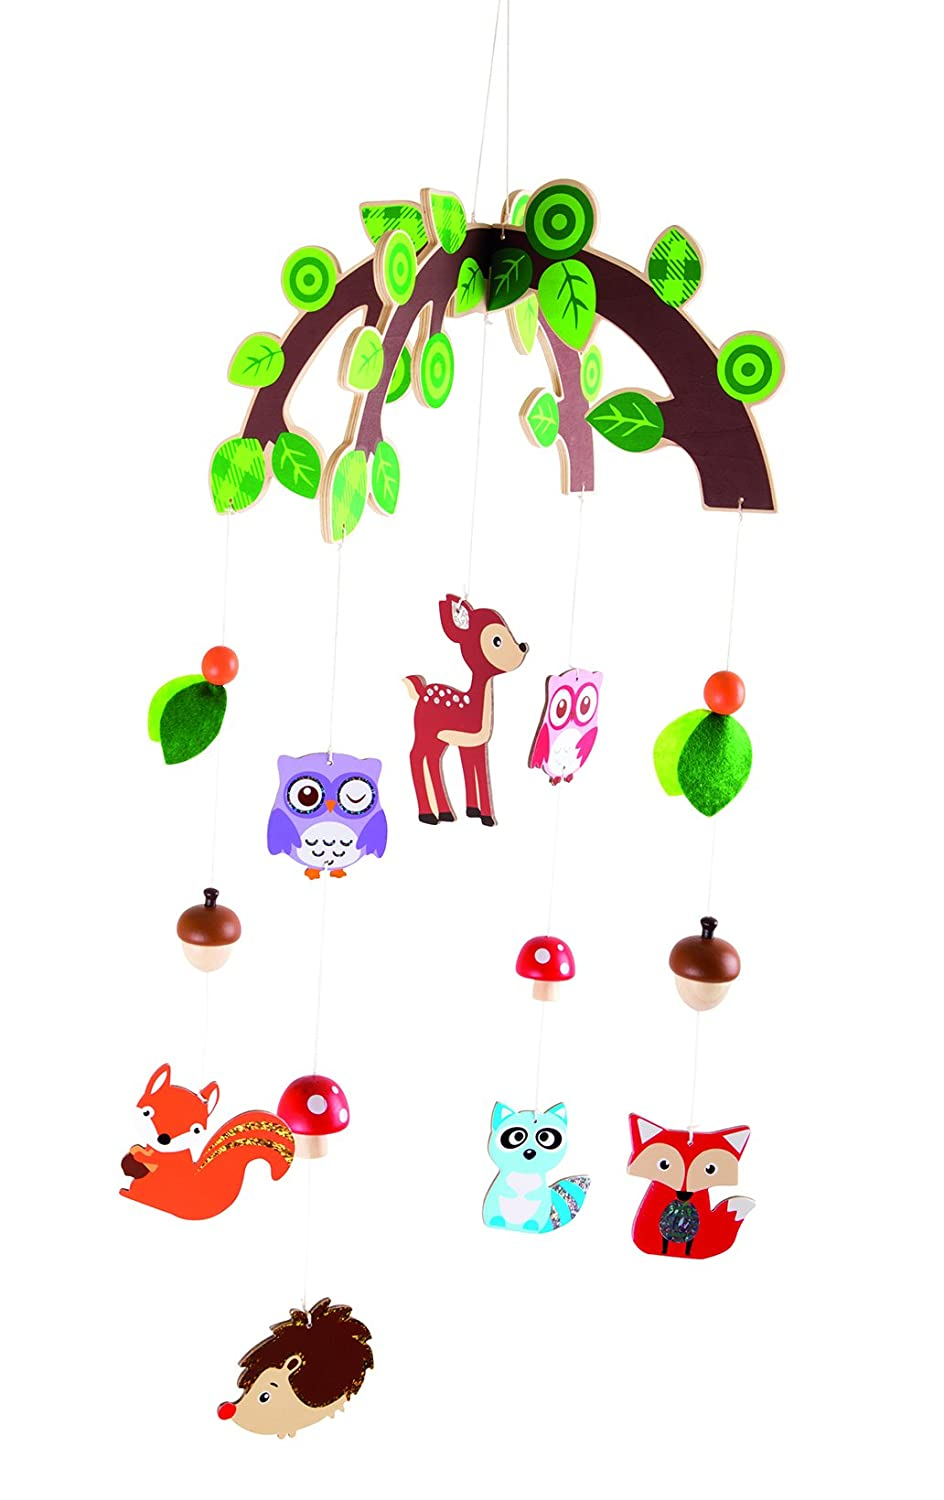 Checklife 904372, children's mobile Forest Animals, for the nursery, children's room children' s room